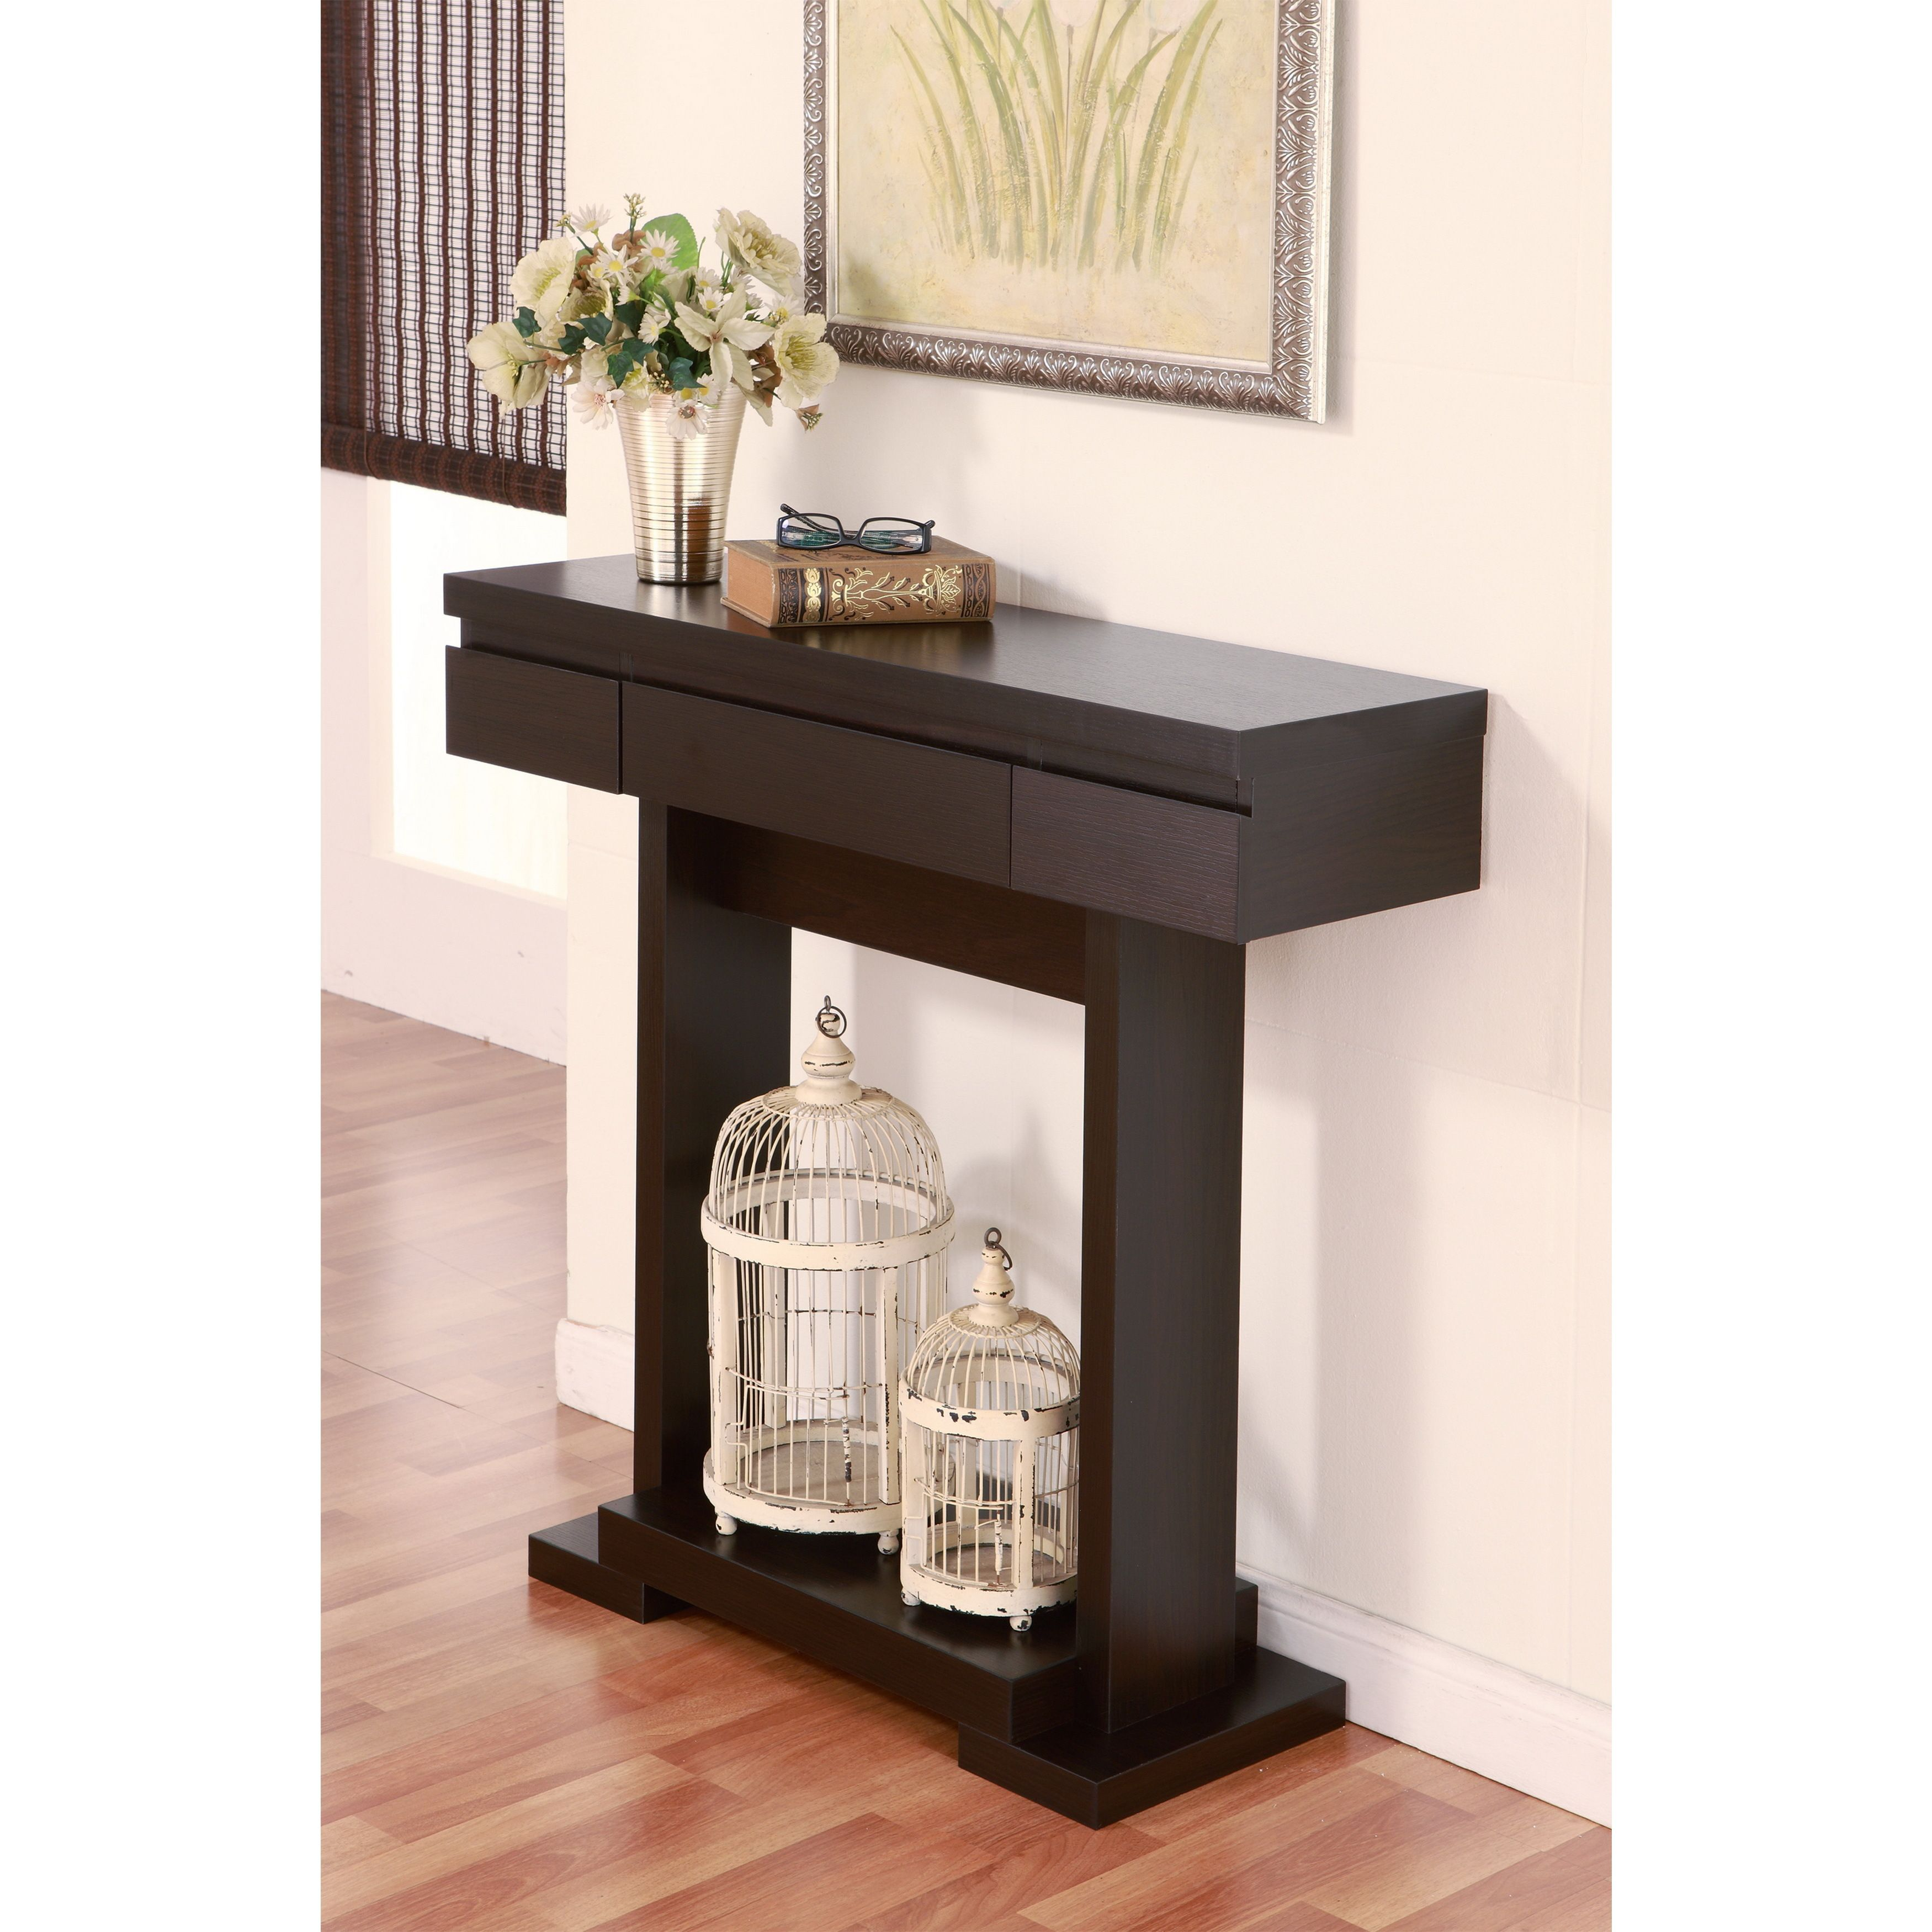 console artistry drawers drawer century peerless white top furniture tall modern dresser nightstand mid with table